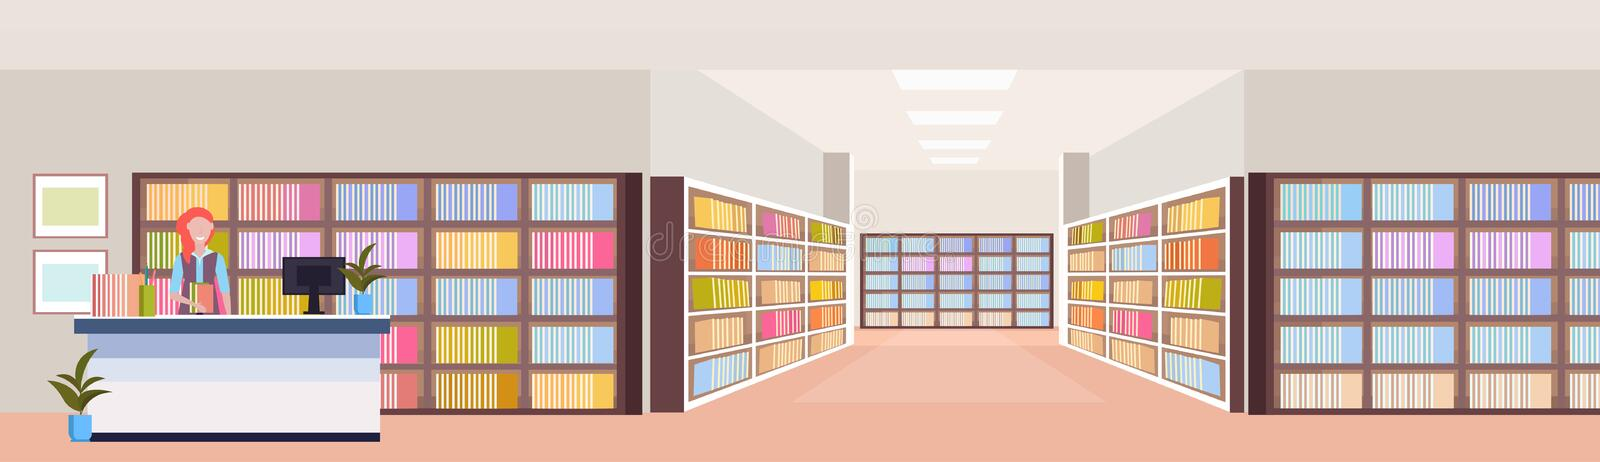 Librarian woman at reception desk modern library interior bookshelves room bookcase with books reading education. Knowledge concept flat horizontal vector stock illustration